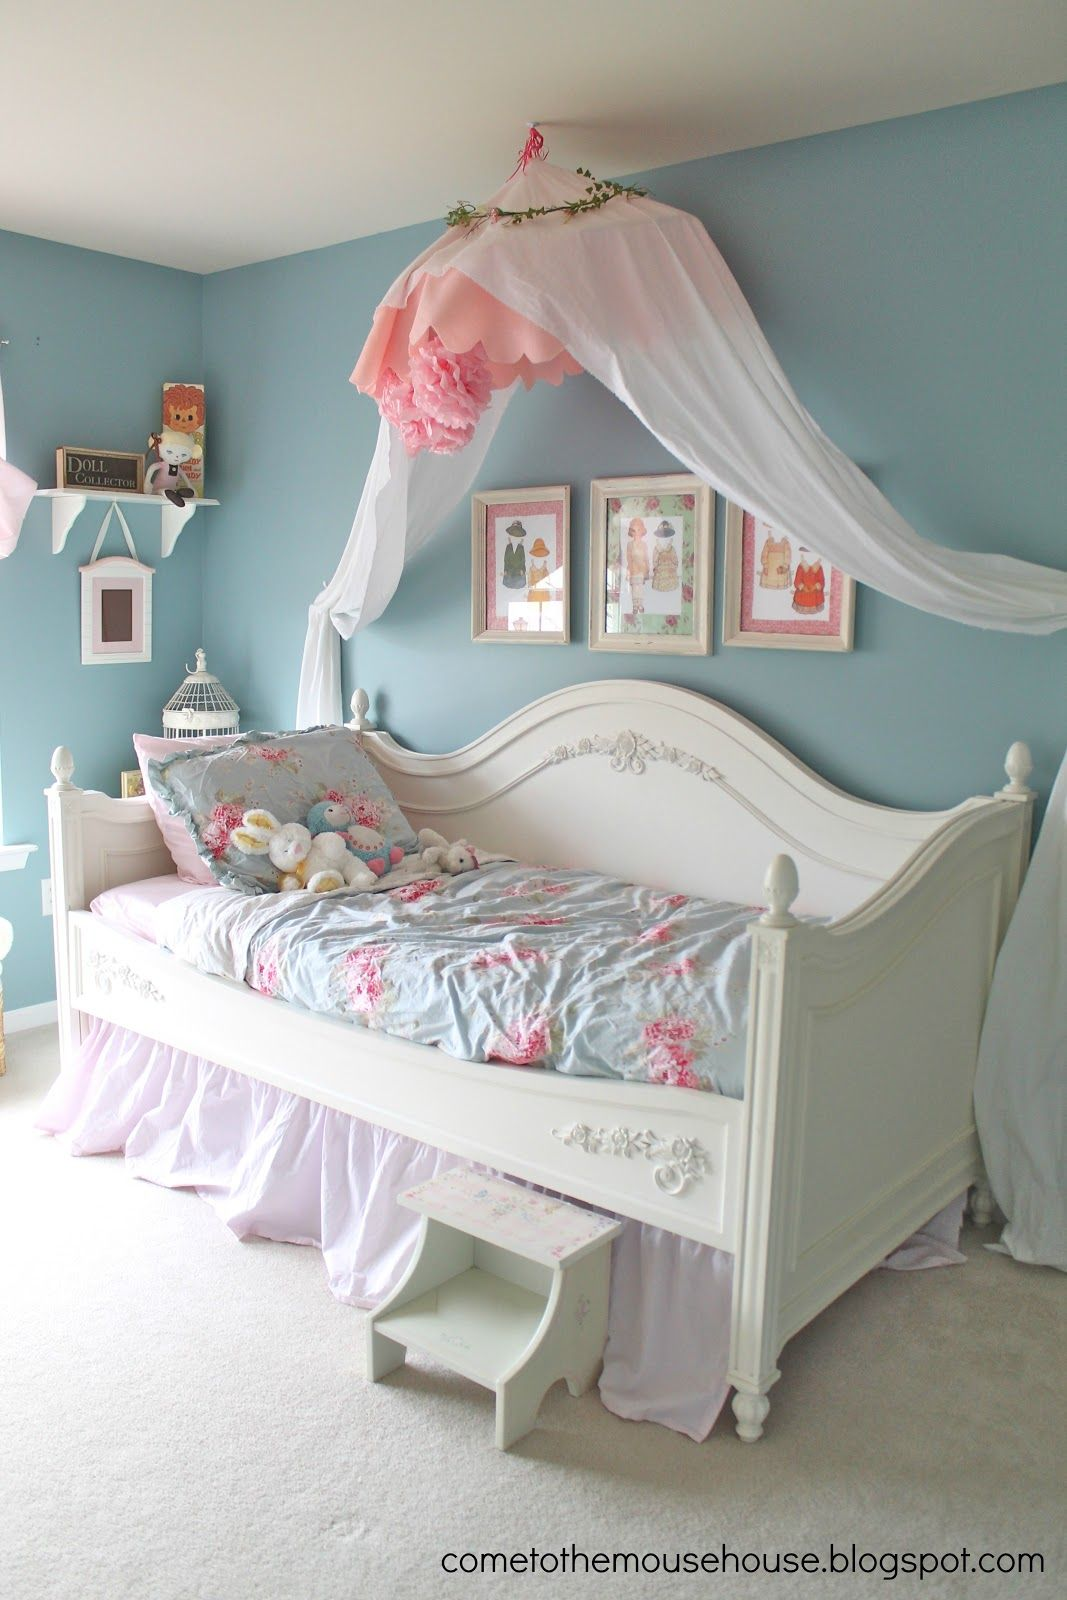 Shabby Chic Bedroom Reveal Welcometothemousehouse Com Chic Bedroom Shabby Chic Bedrooms Girl Room